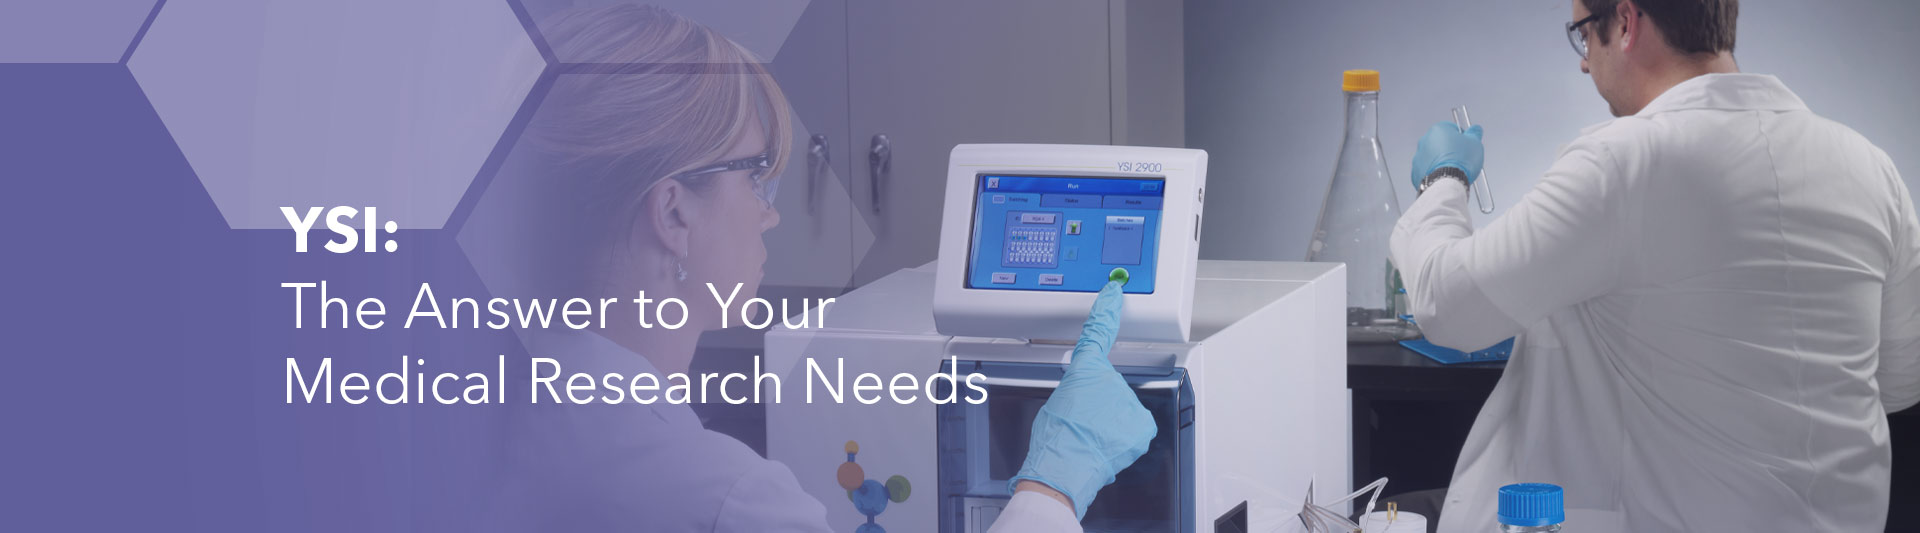 Medical Research Banner